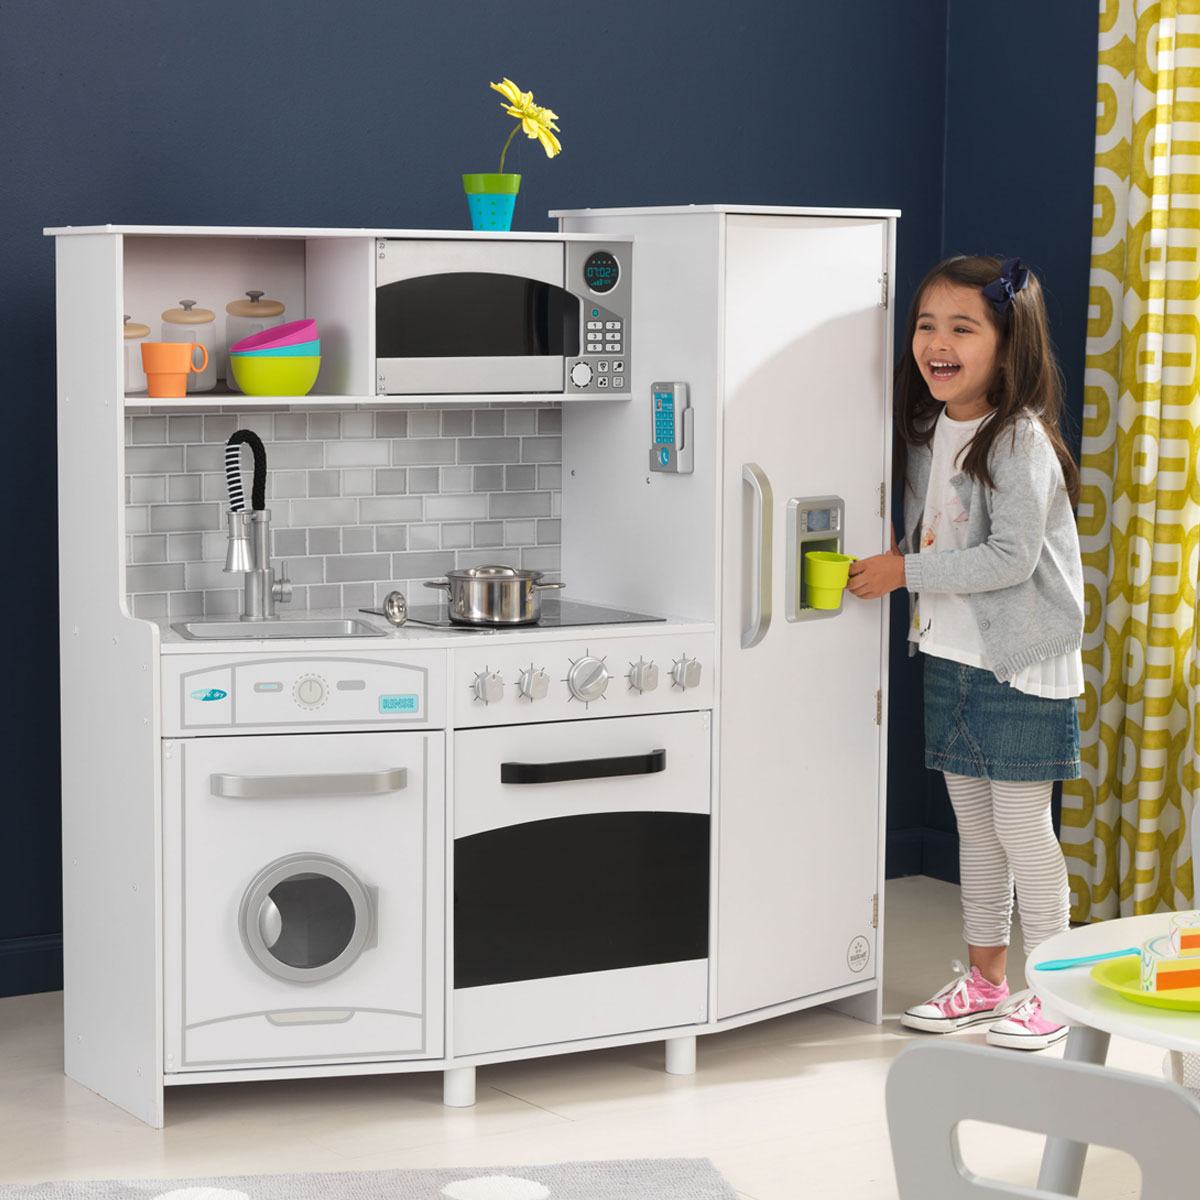 Kidkraft Large Play Kitchen 53369 Pirum